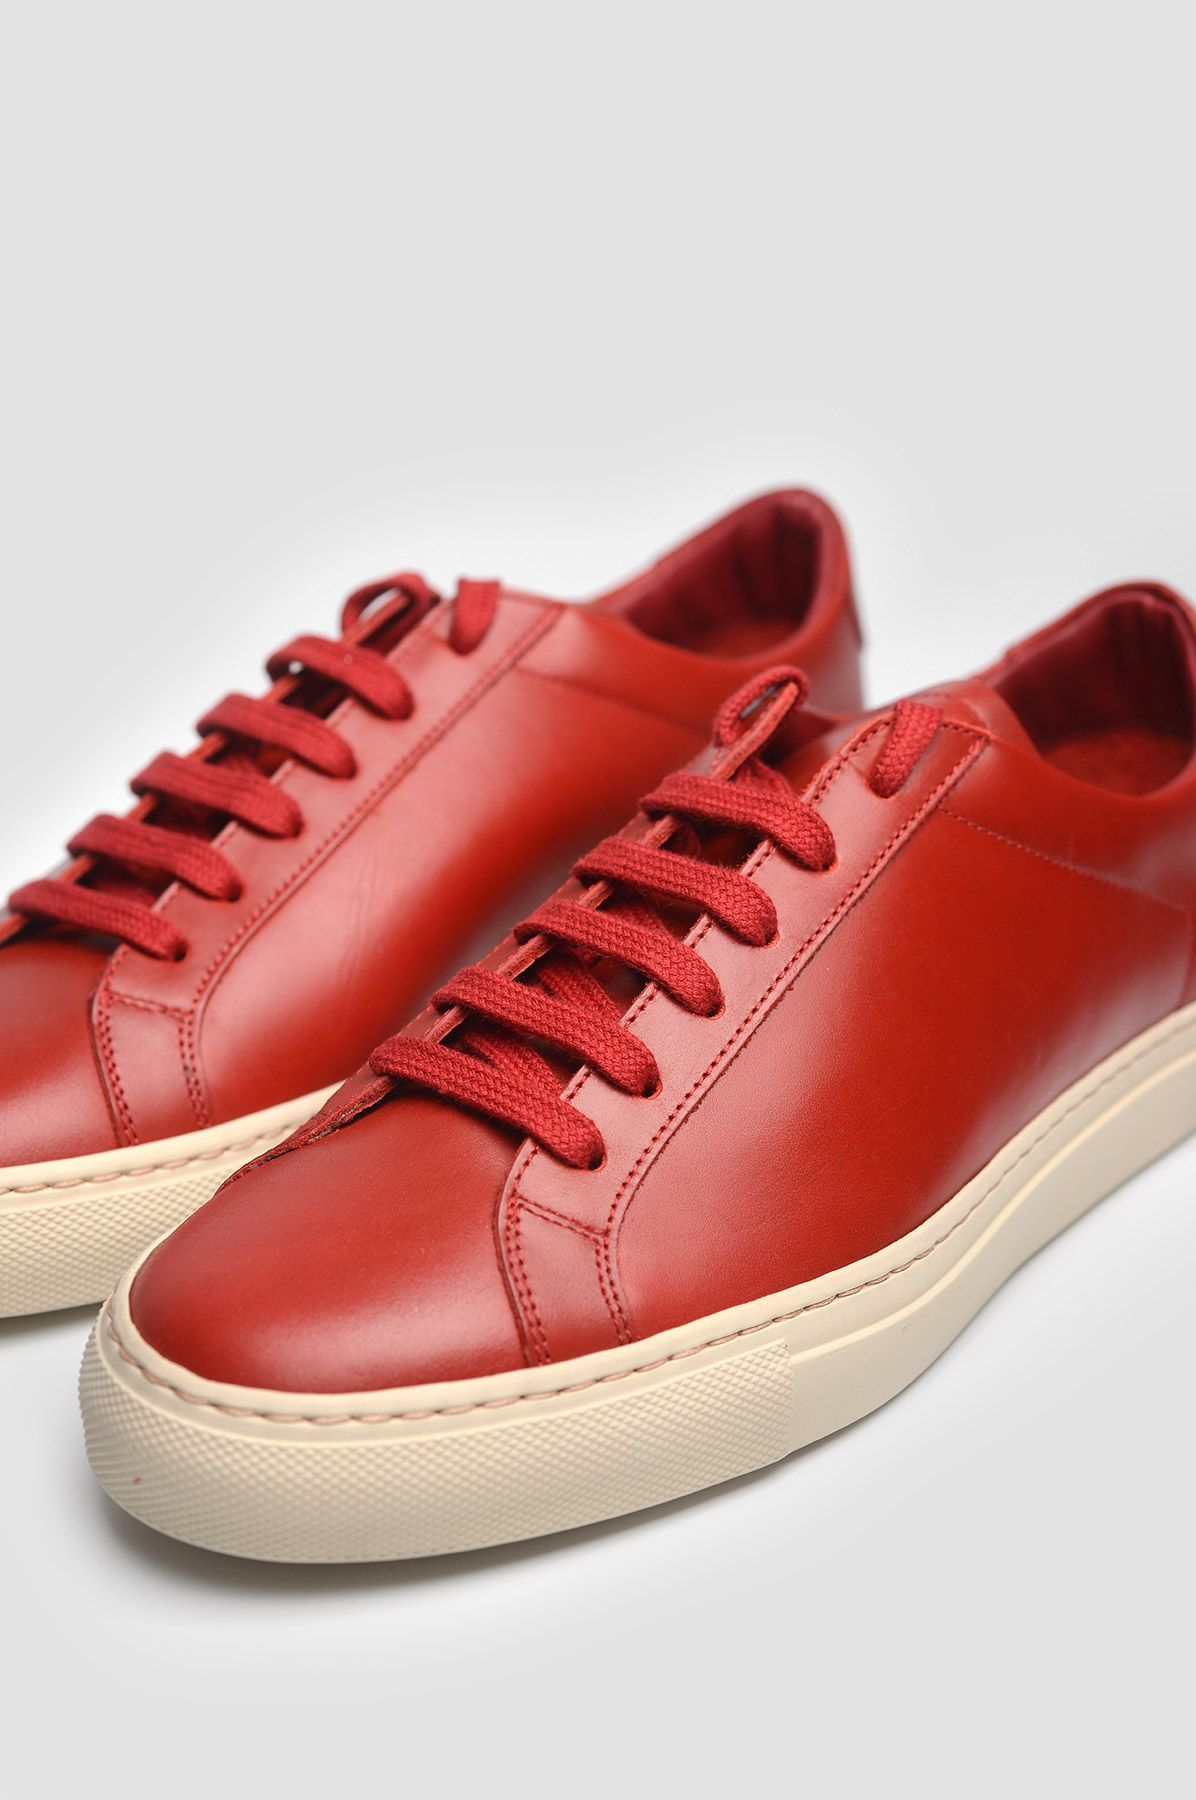 33fc4bd6642c COMMON PROJECTS 1854 Original Achilles Vintage Low Red Sneakers. Red round  toe leather sneakers with leather lining